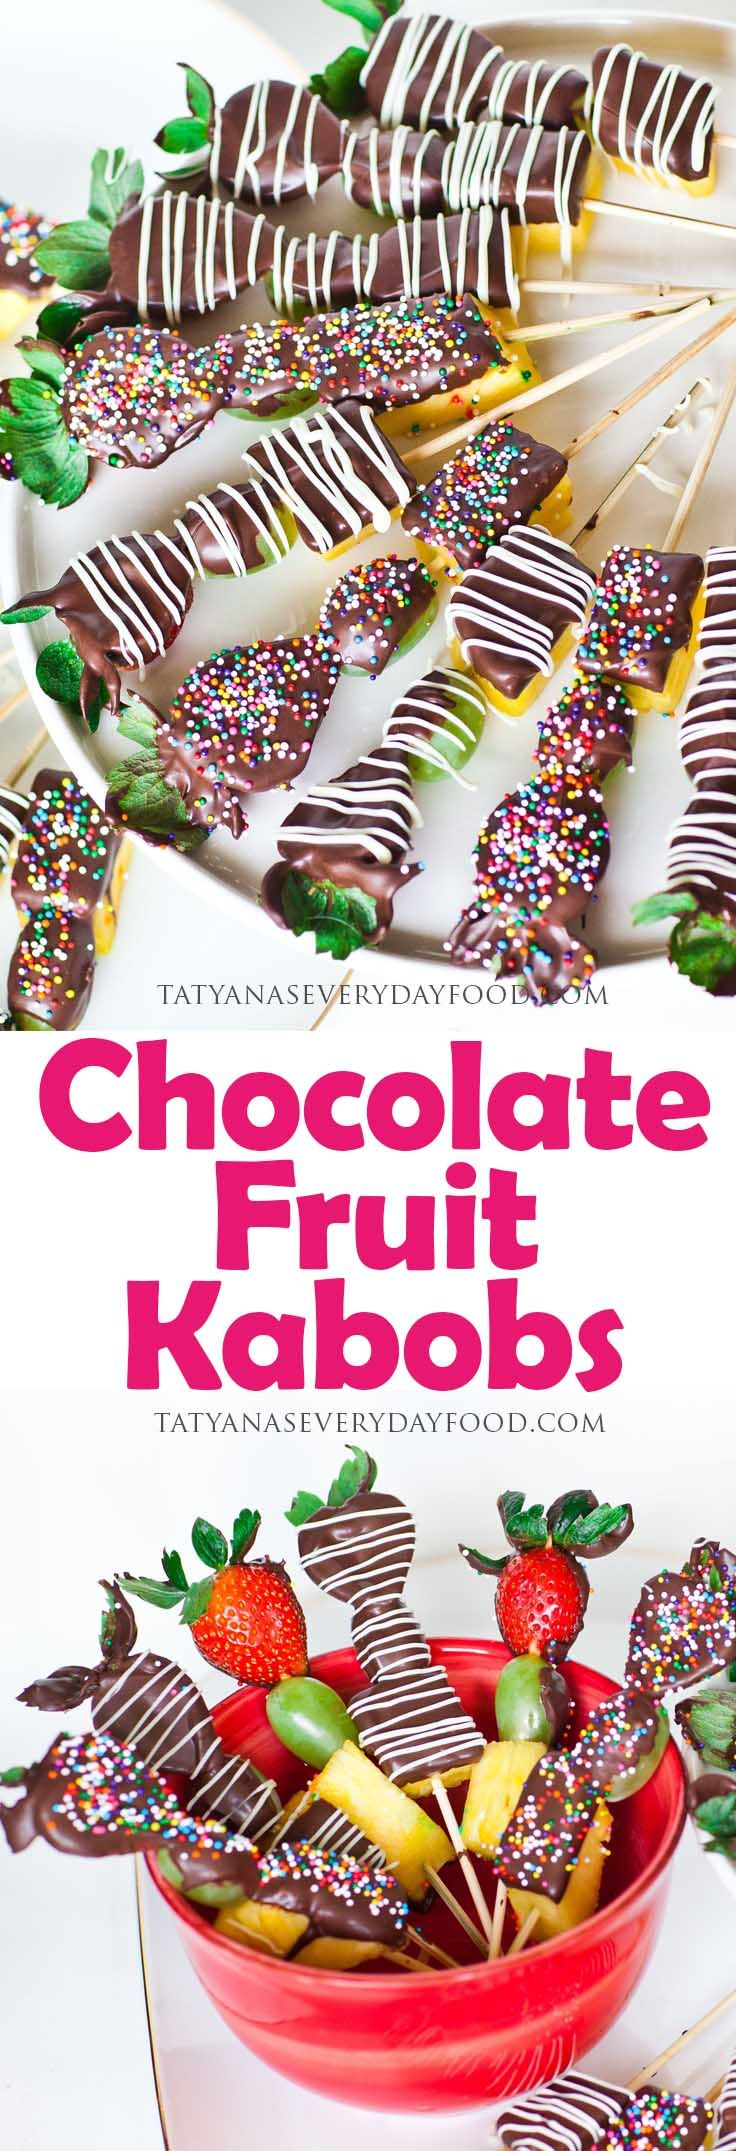 Chocolate Fruit Kabobs - Tatyanas Everyday Food! Make this easy recipe NOW!